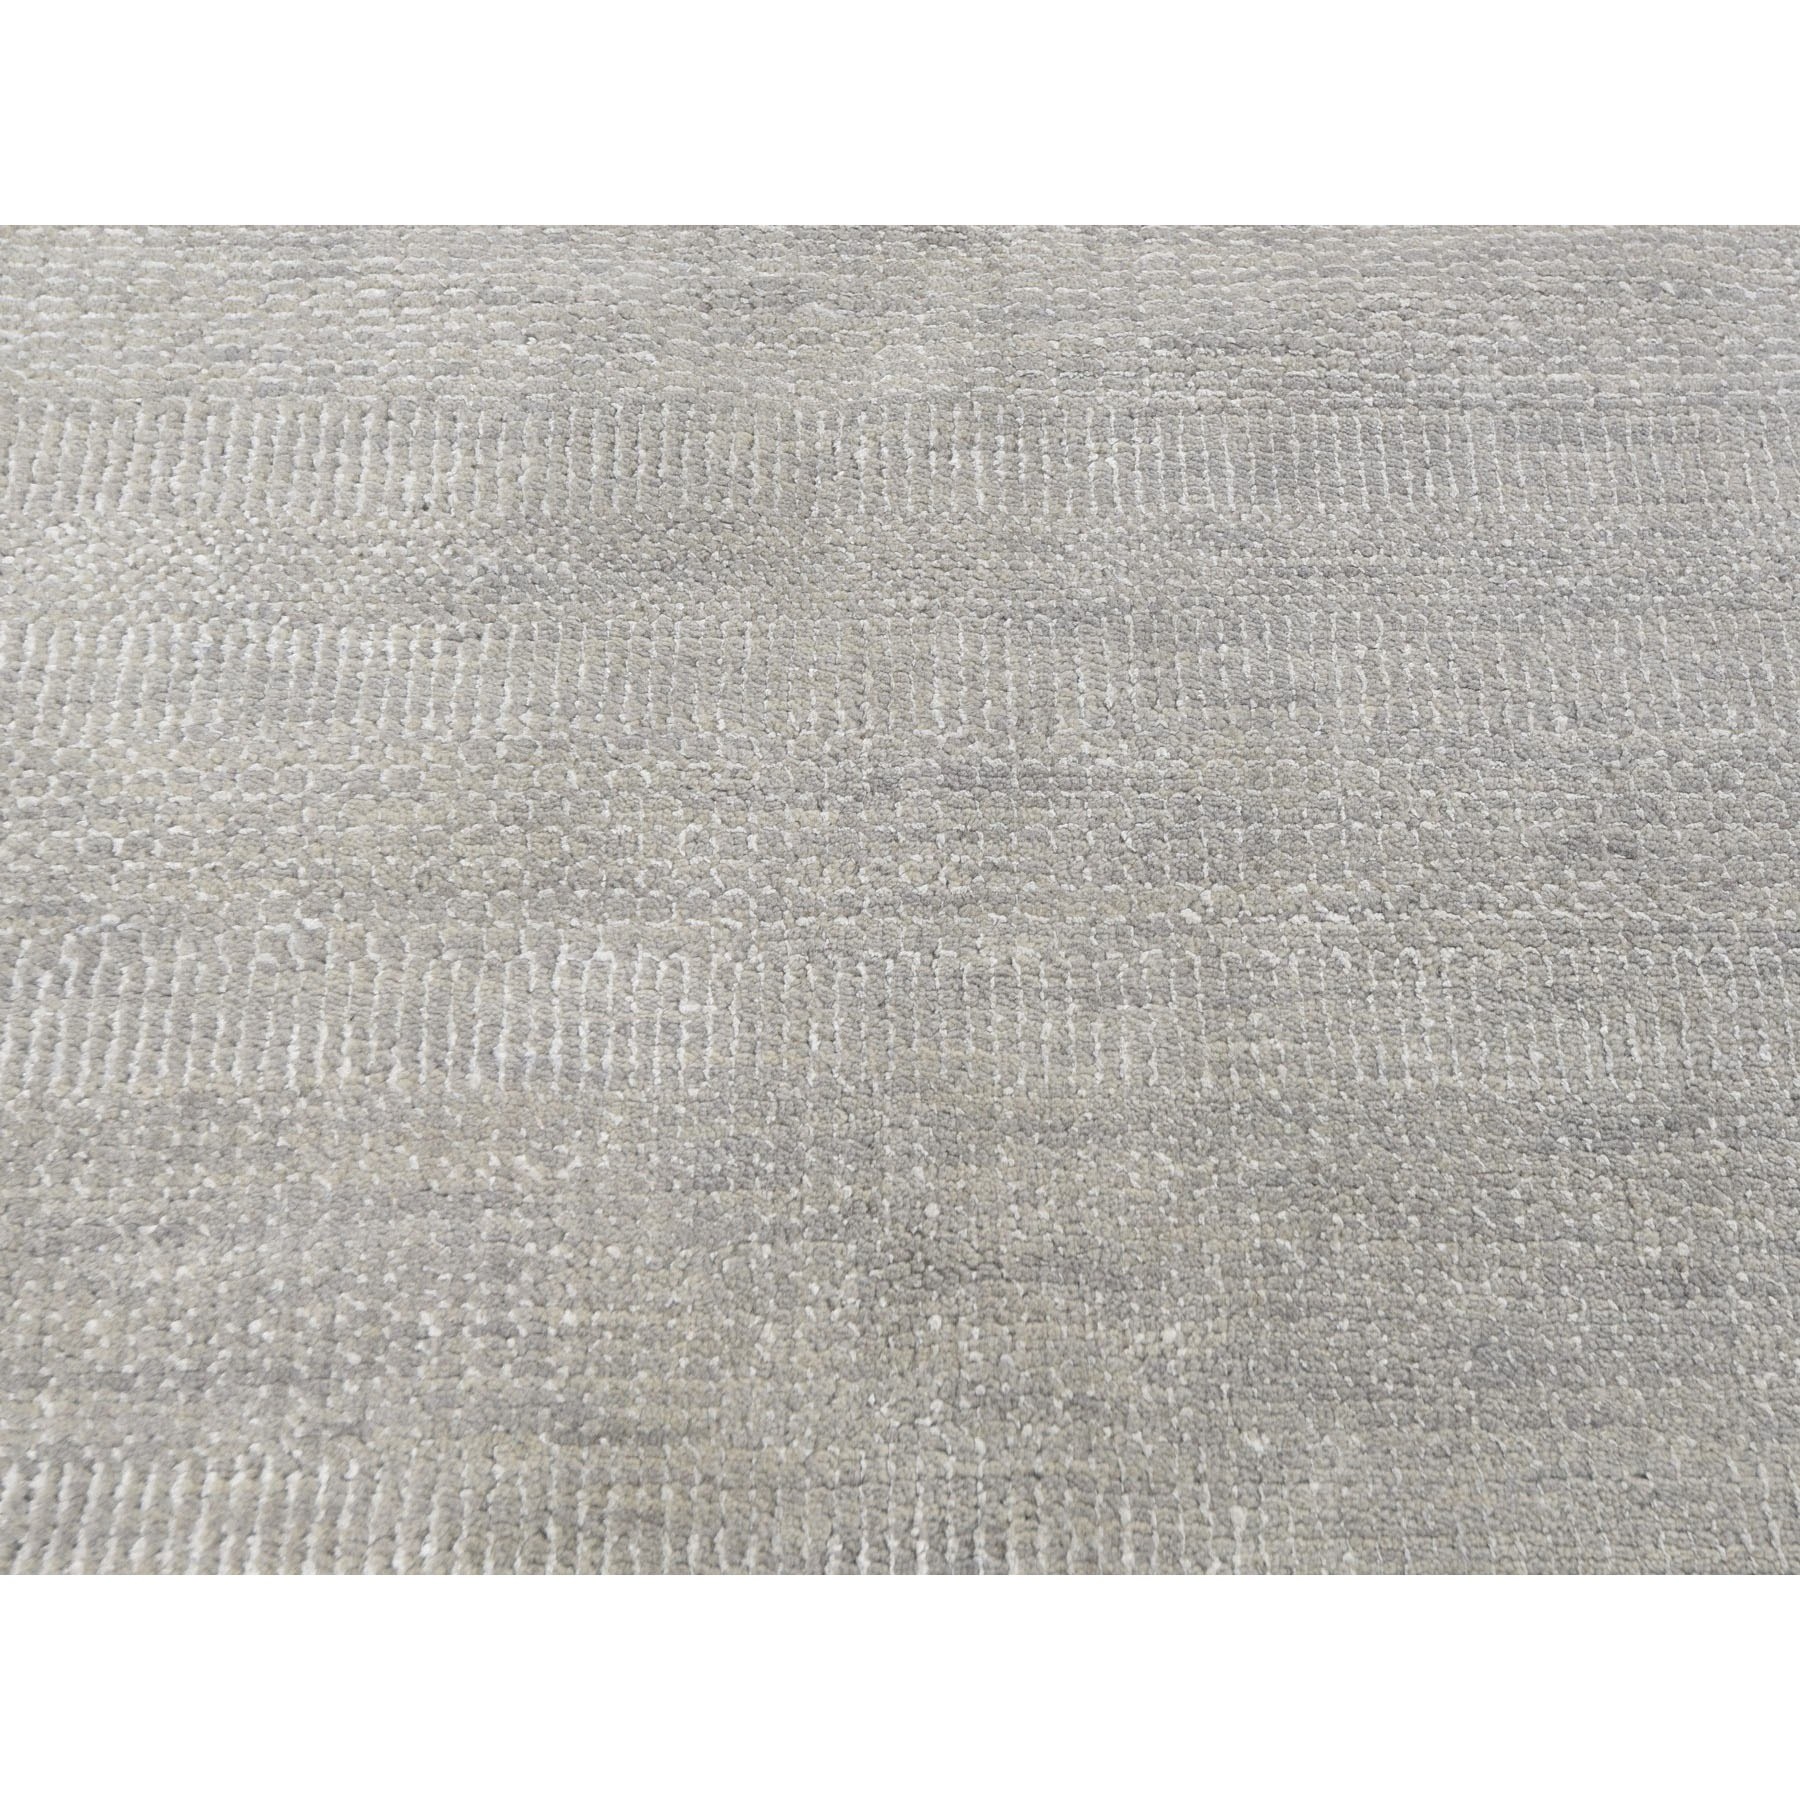 "9'2""x11'9"" Gray Wool and Silk Grass Design Thick And Plush Hand Knotted Oriental Rug"